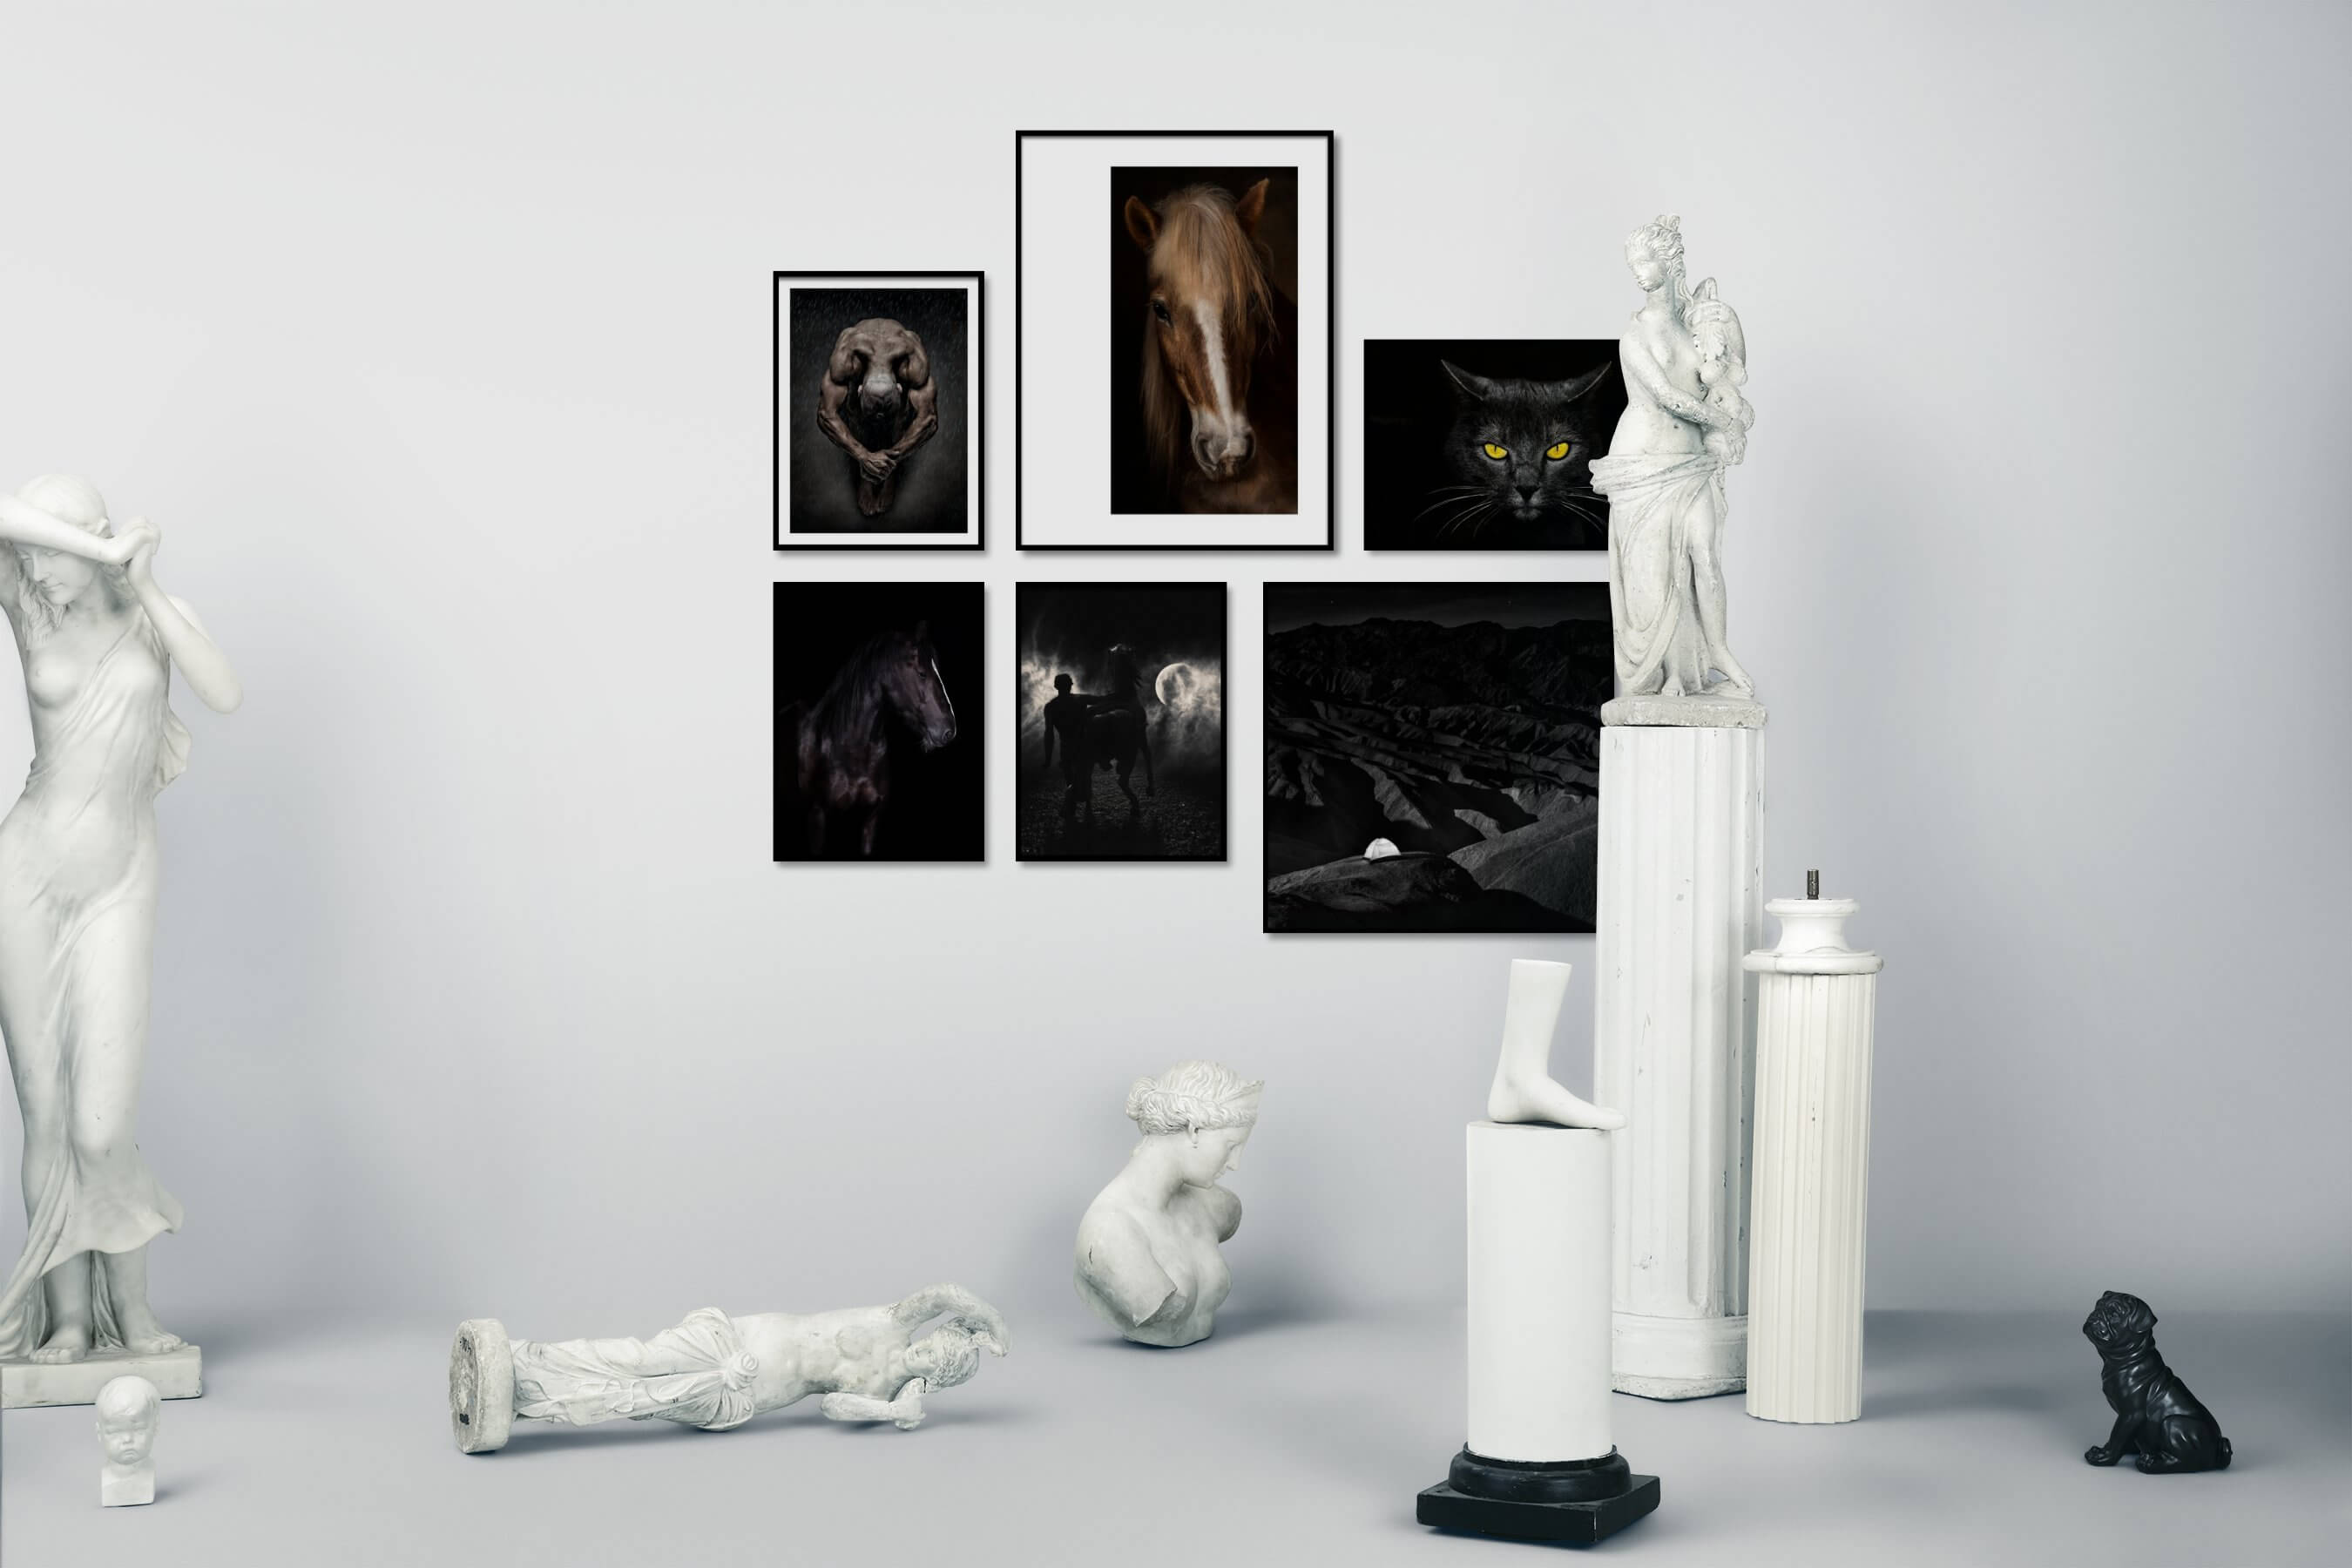 Gallery wall idea with six framed pictures arranged on a wall depicting Fashion & Beauty, For the Moderate, Animals, Country Life, Dark Tones, For the Minimalist, Black & White, and Nature